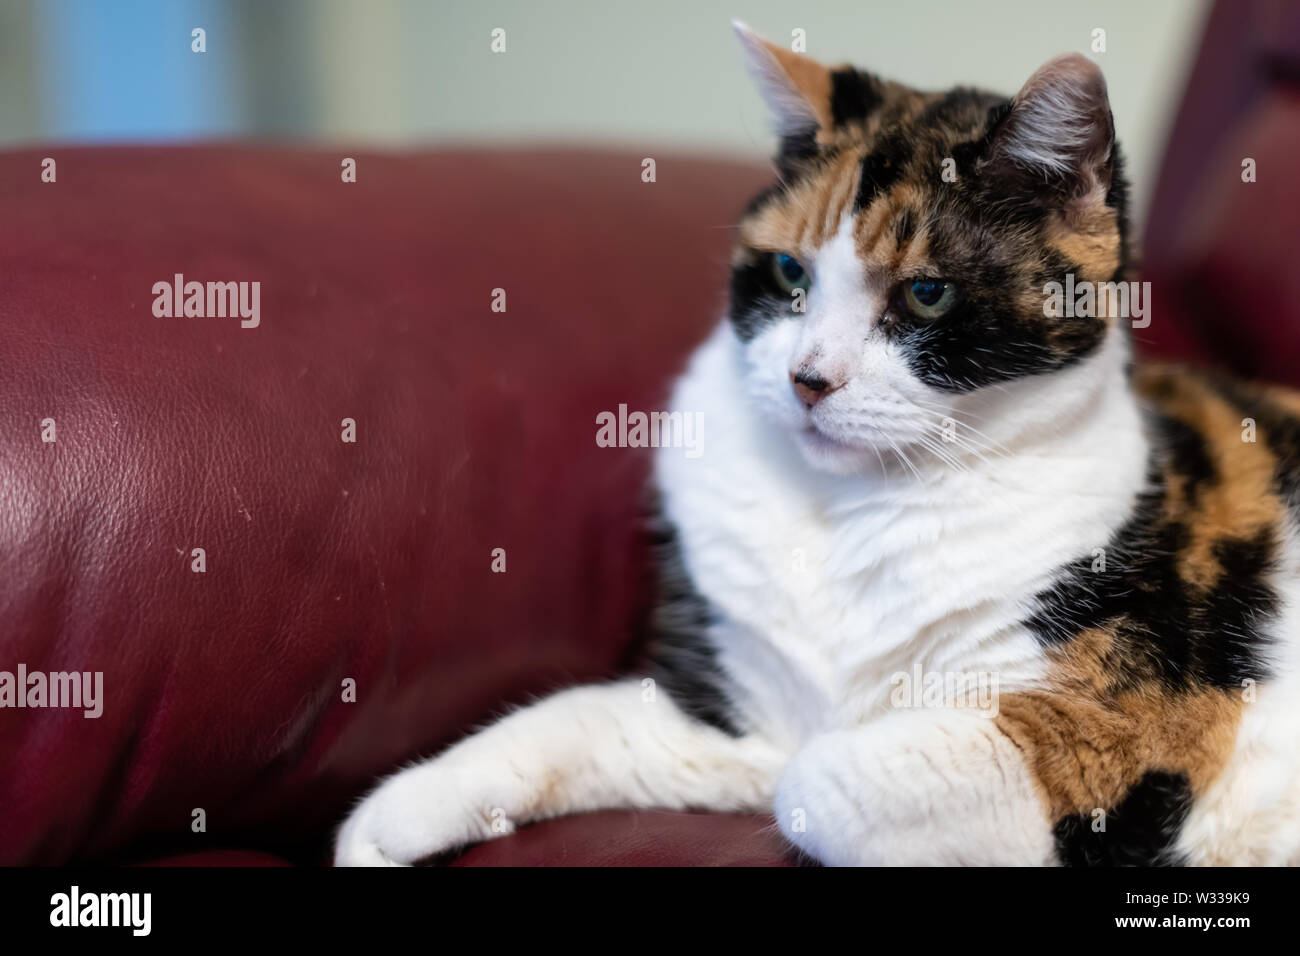 Closeup of senior old calico cat lying on red leather sofa or couch corner in home living room - Stock Image